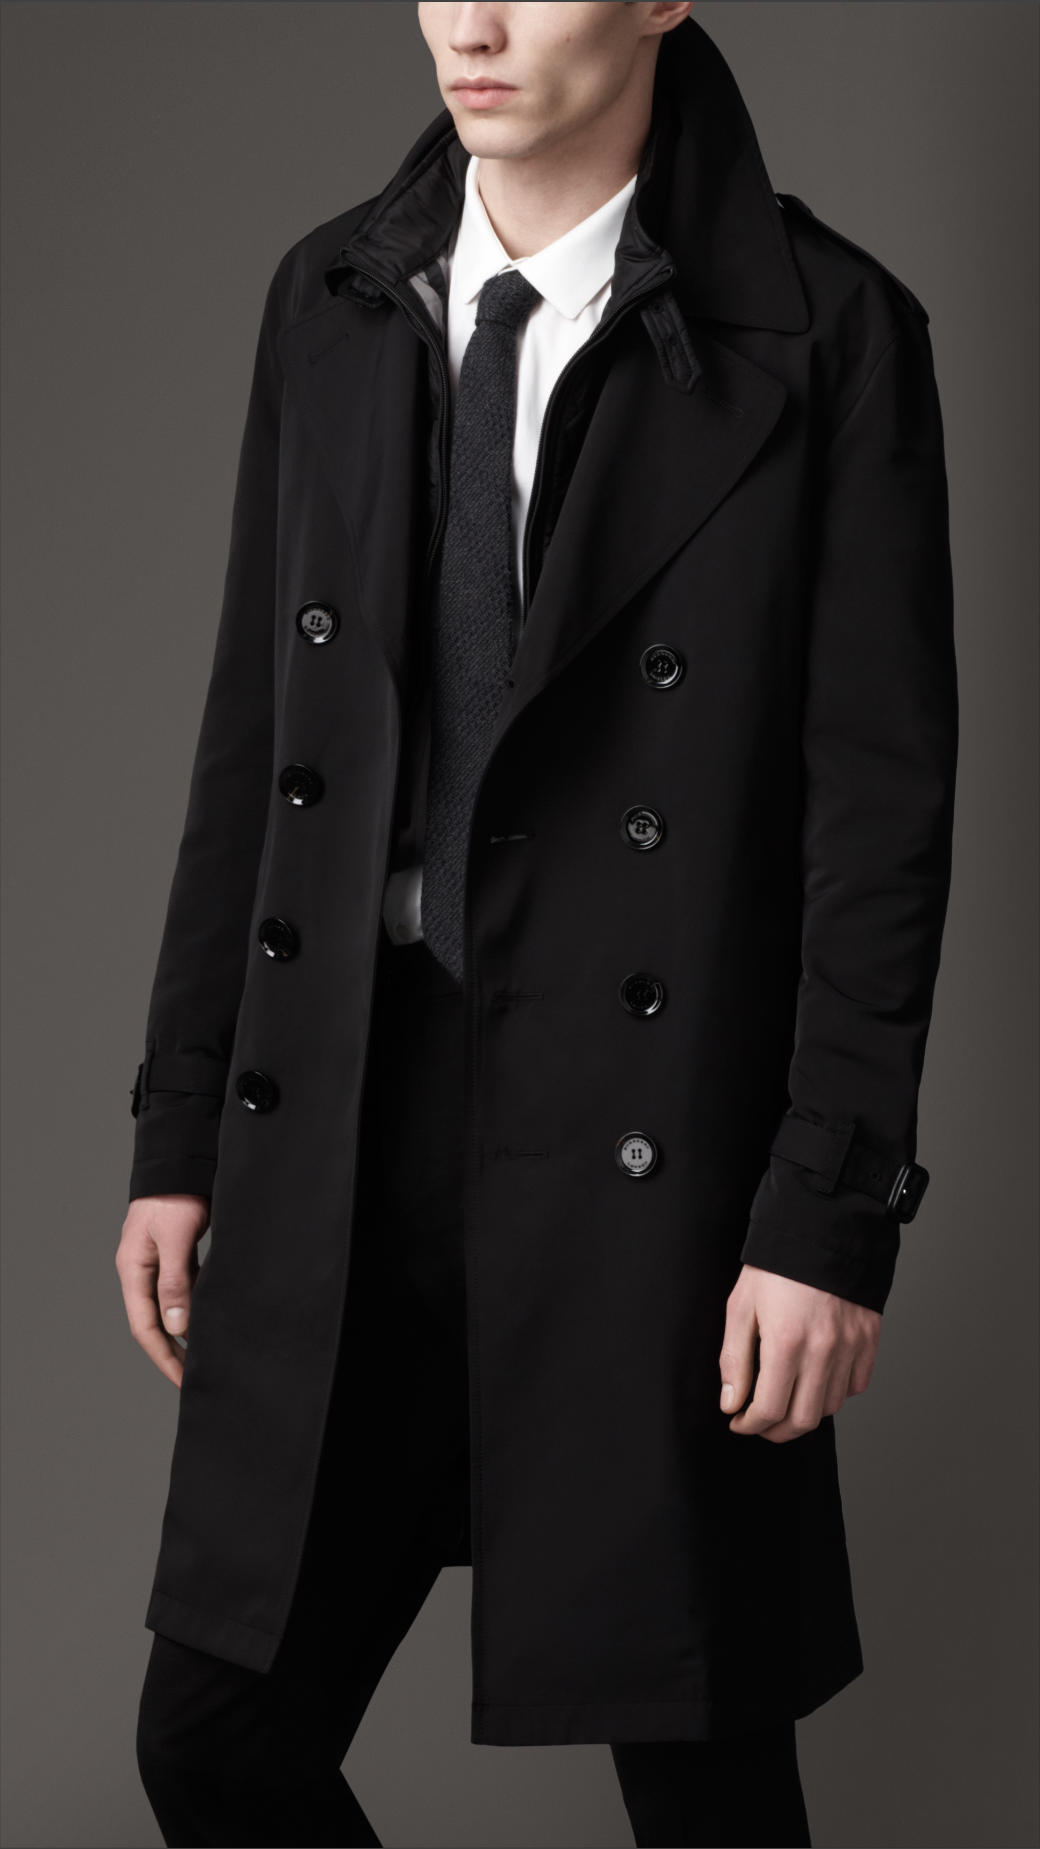 Bluelans Men's Fashion Trench Coat Winter Long Jacket Double Breasted Overcoat Outwear. Sold by Bluelans. $ $ Robe Factory LLC Doctor Who 10th Doctor Brown Trench Coat Styled Men's Robe. Sold by Toynk. $ $ Amtify Mens Military Style Trench Coat. Sold by amtify ecommerce LLC.